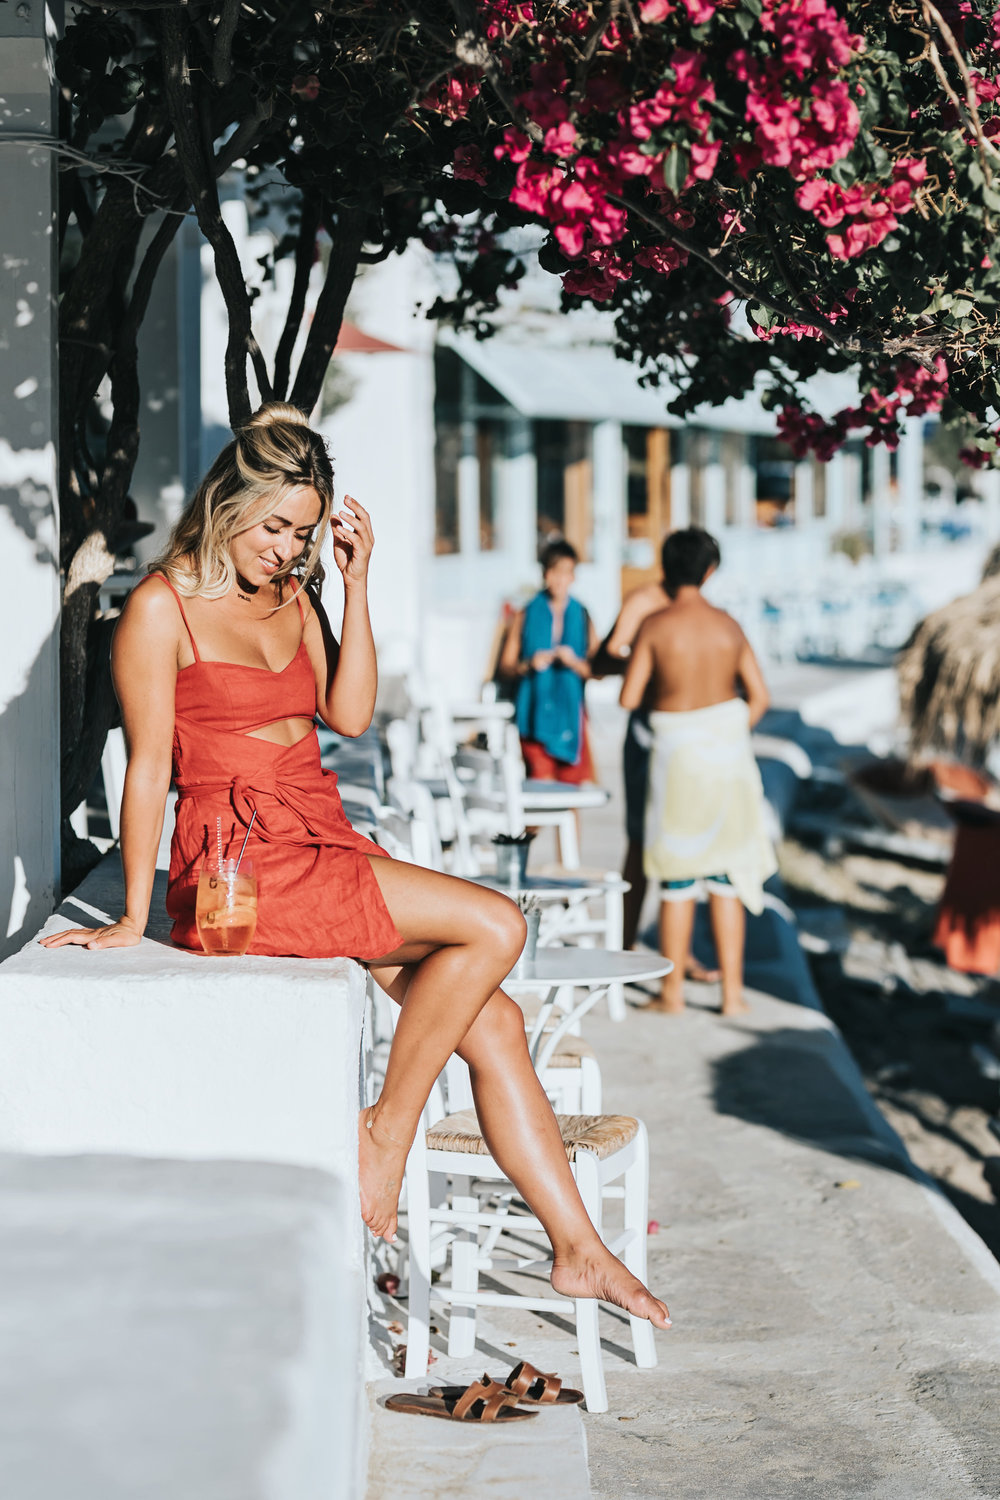 Photos by  Allison Kuhl   Majorelle  Dress from  Revolve | Faithfull The Brand Swimsuit |  Reformation  Dress, Solodus Heels,  CJxMA  Melanie Auld Hoop Earrings | Beach Riot Swimsuit |  Reformation  Dress